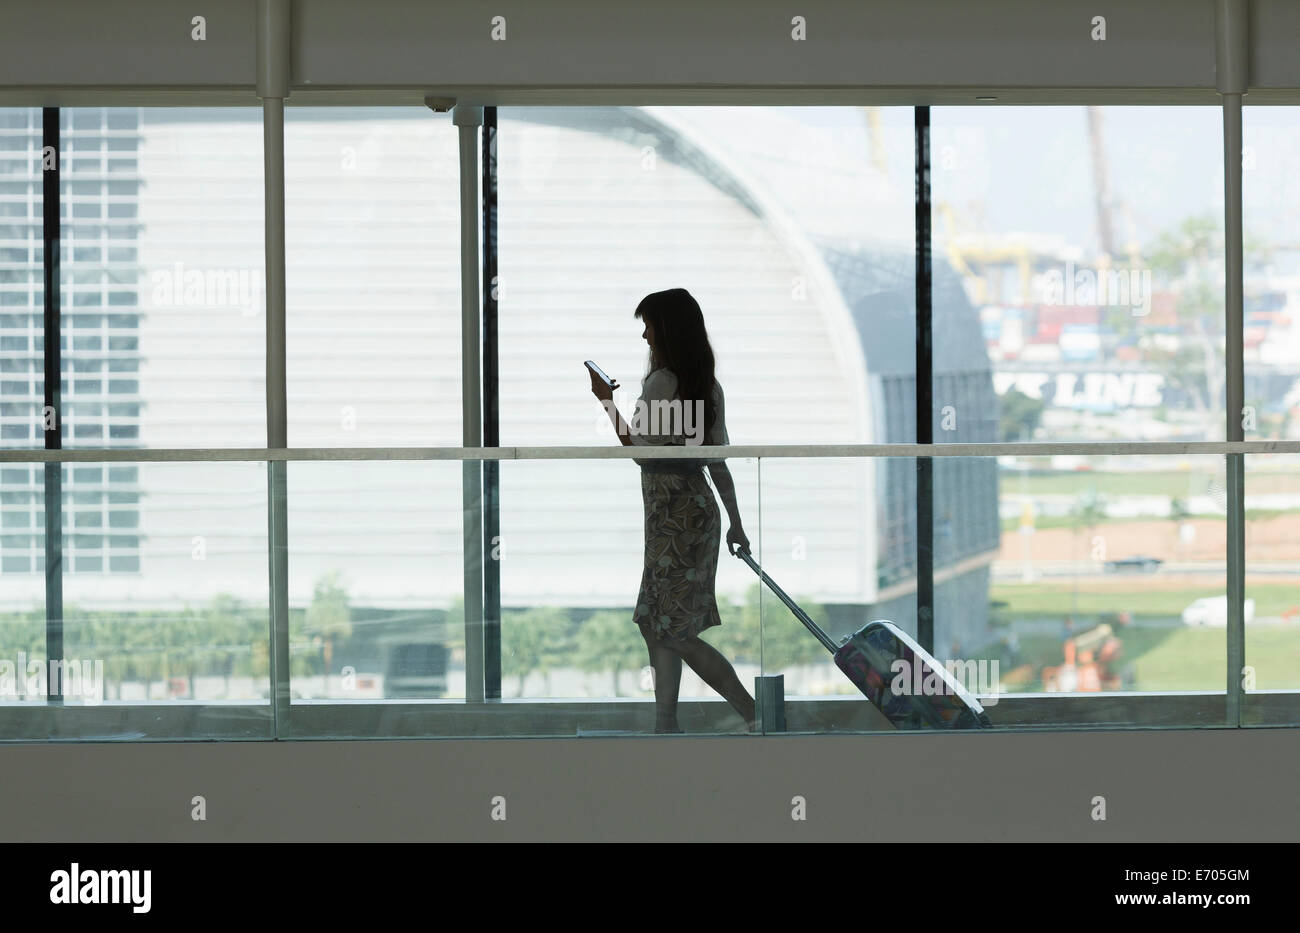 Young woman using smartphone et suitcase in airport Photo Stock